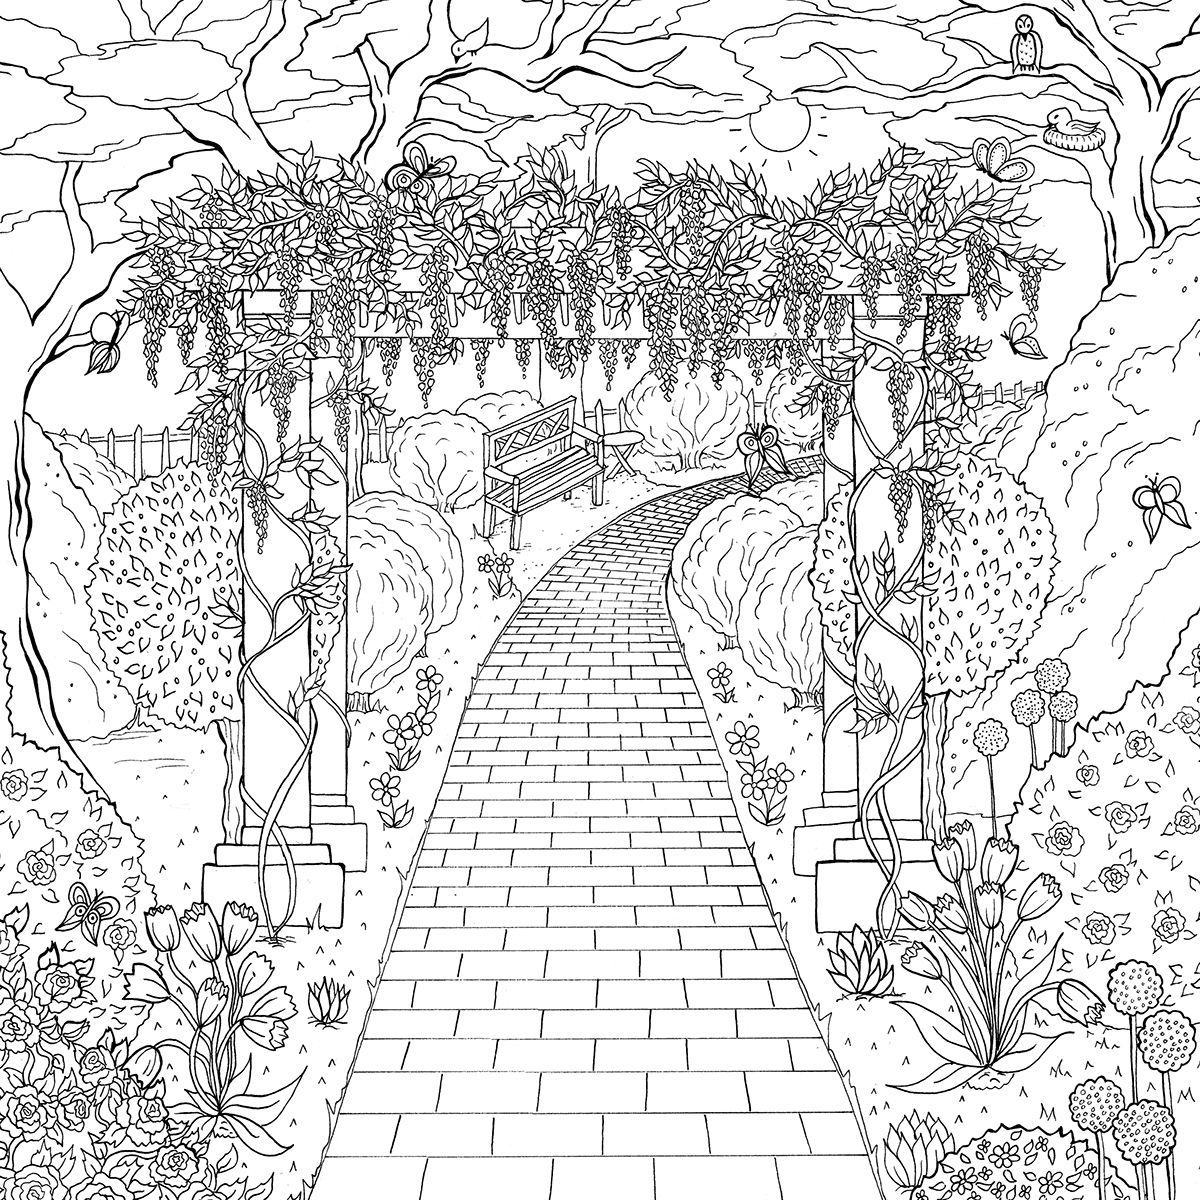 coloring pages house with garden 9 best images of worksheets bird info bird body parts garden pages with coloring house